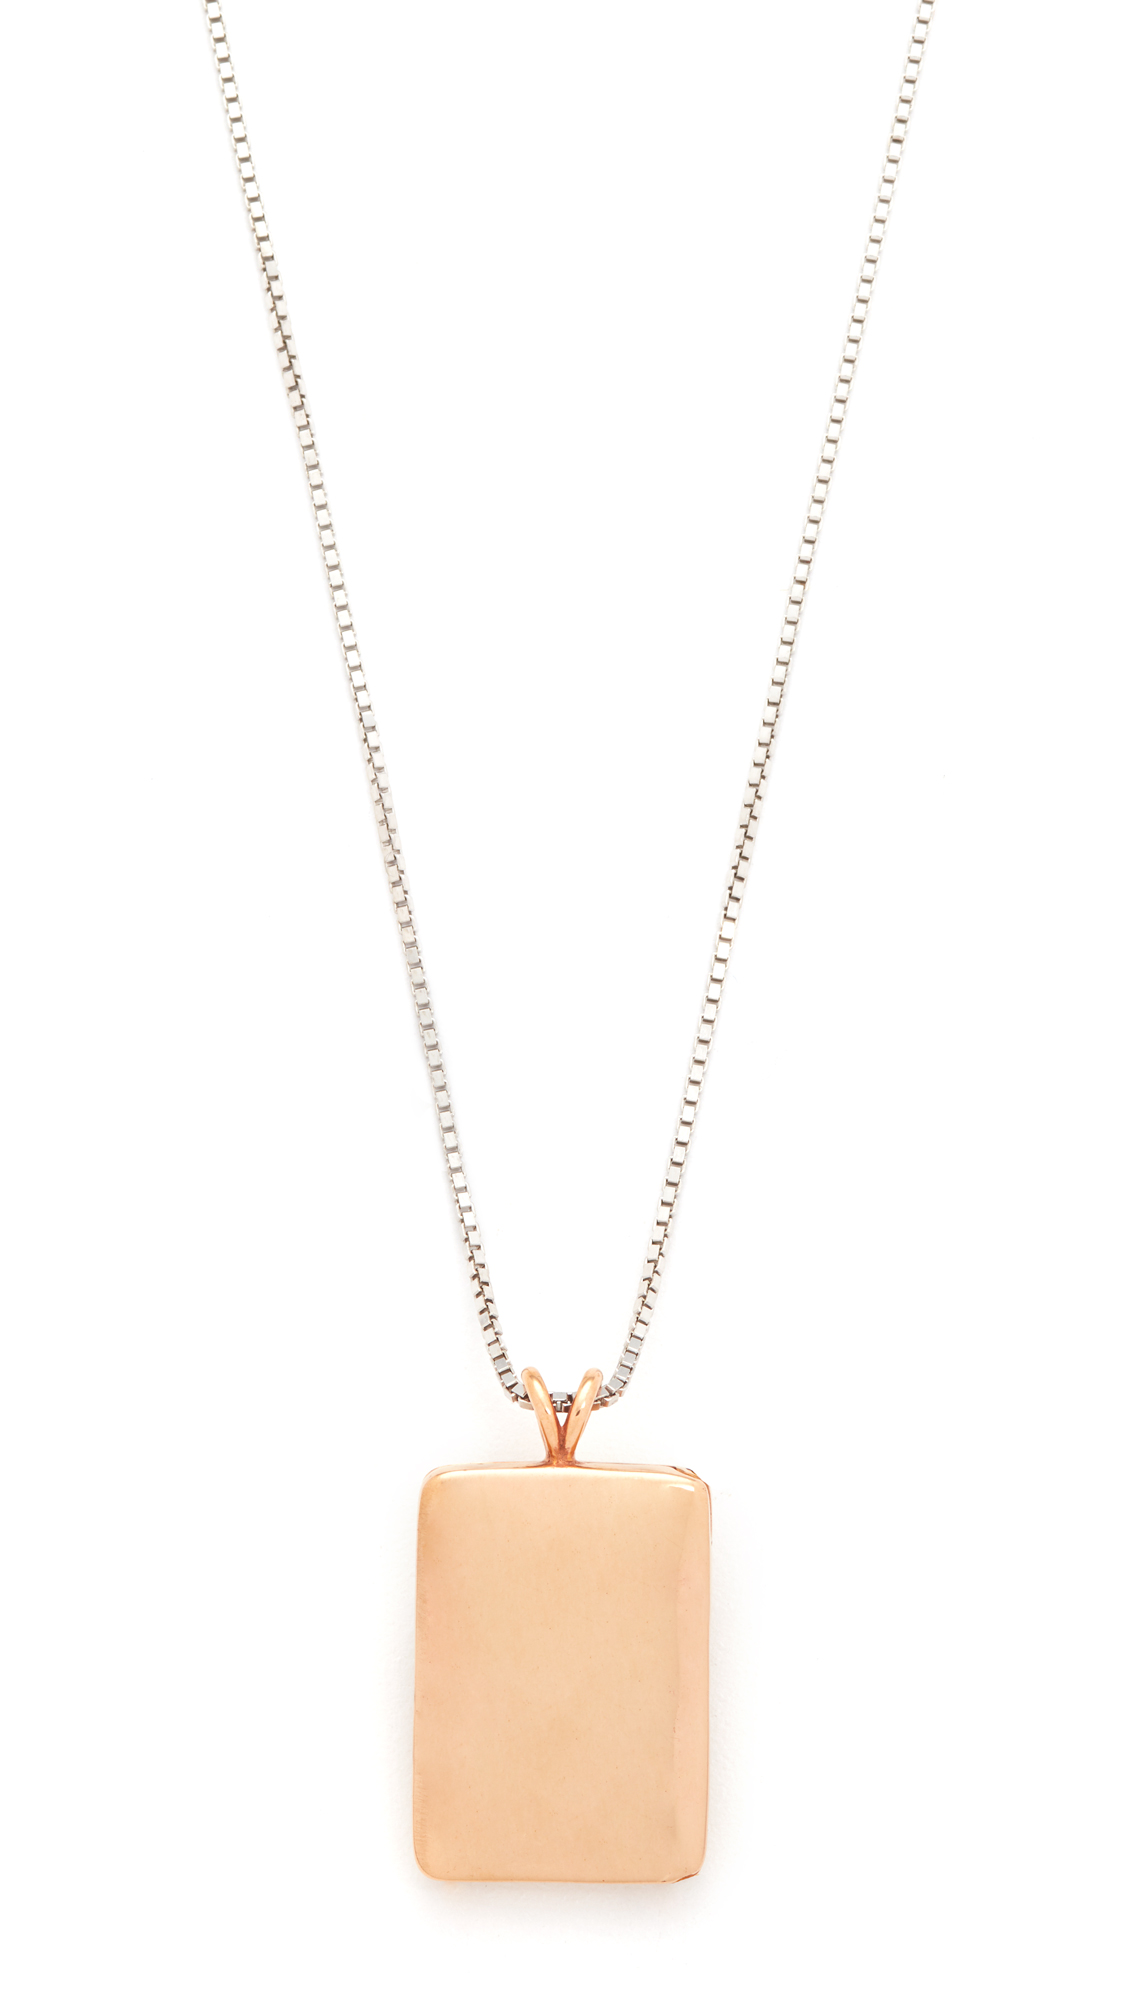 Madewell Demi-Fine Bronze Locket Necklace - Bronze